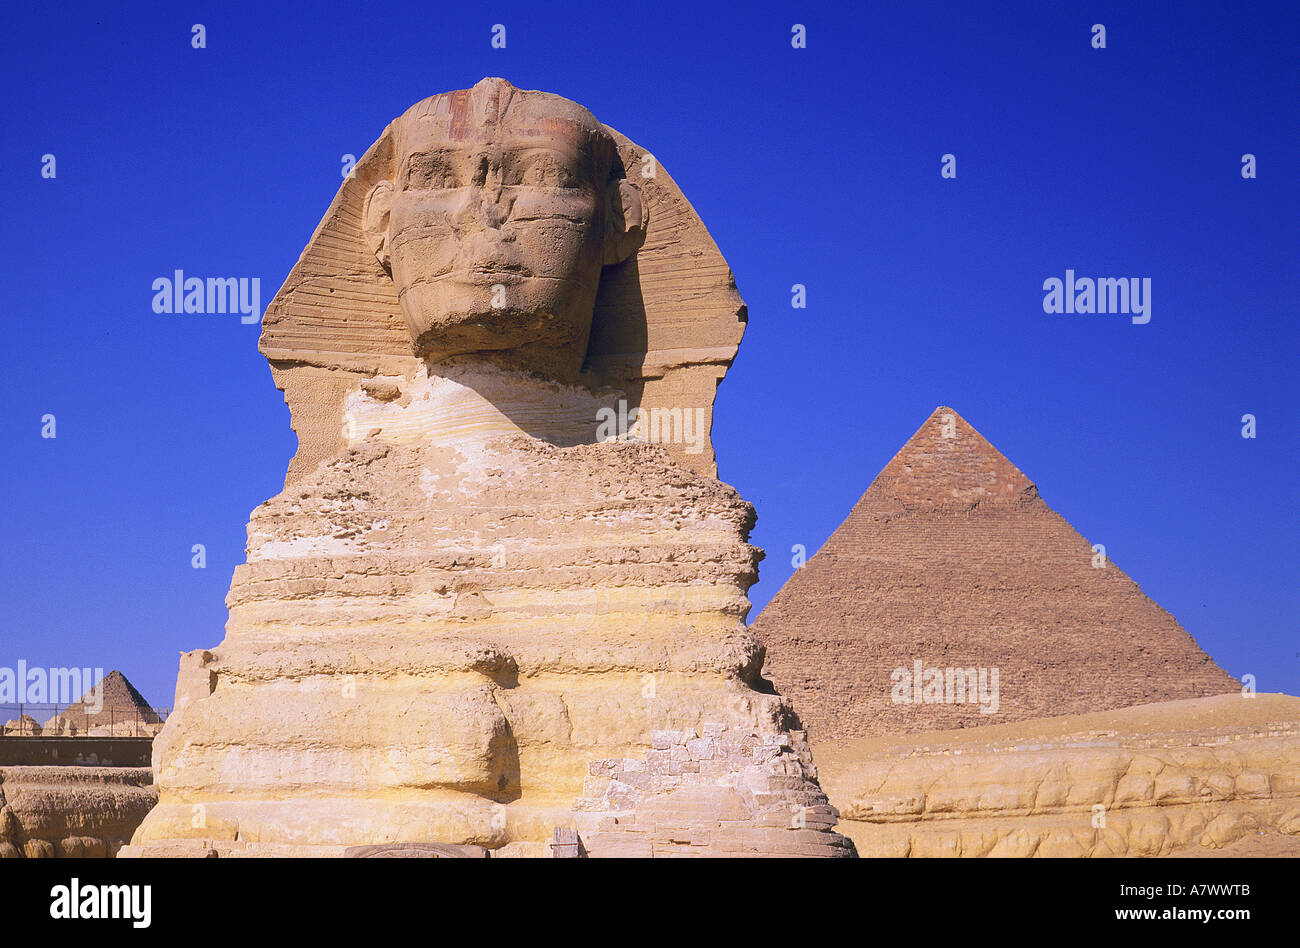 Egypt, Cairos, Kheops pyramid and the sphinx - Stock Image